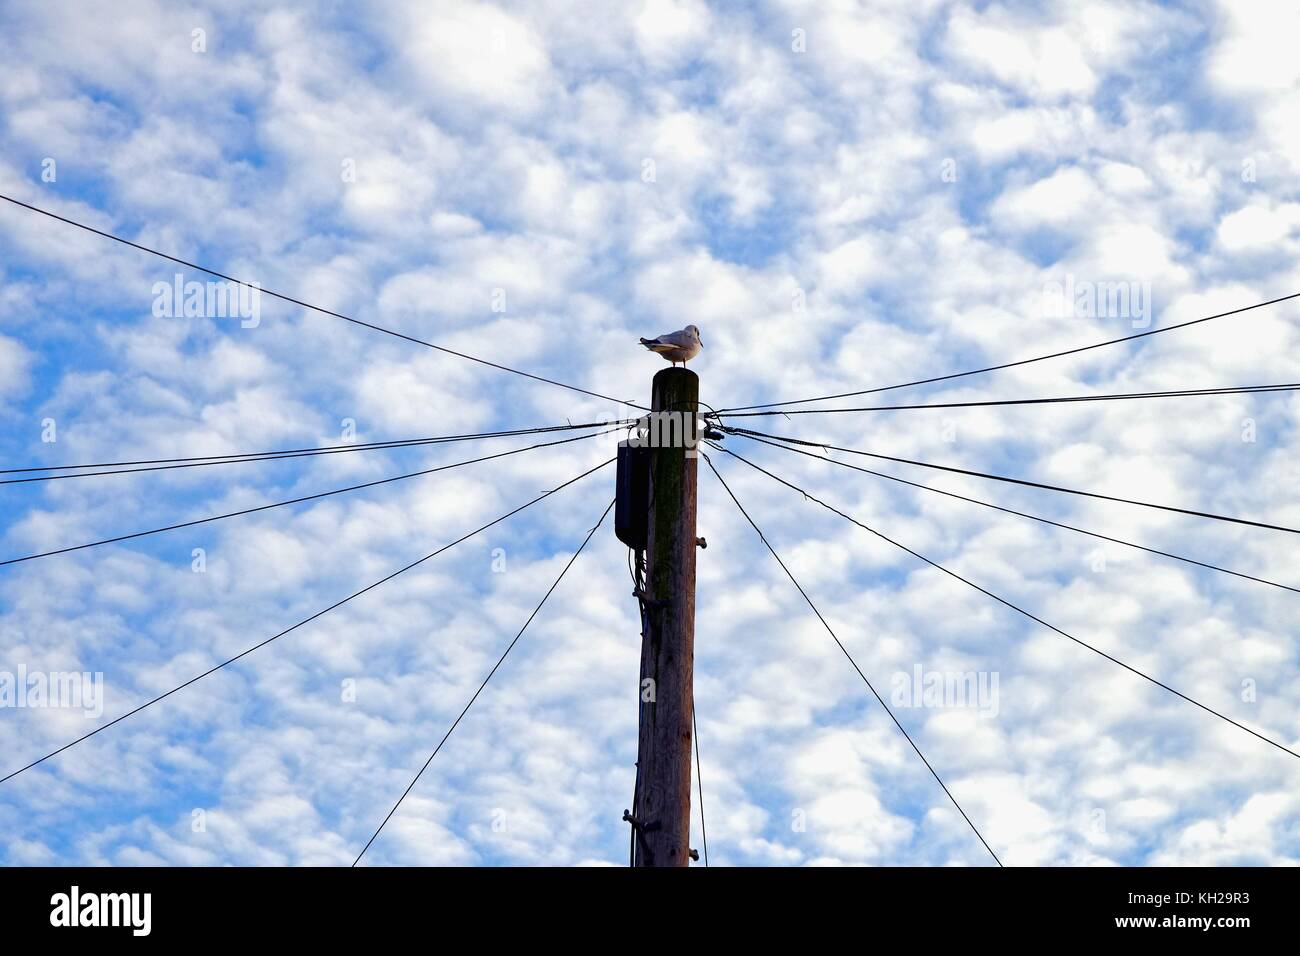 Bird sitting on top of a British telecom telegraph pole against a background of a mackerel sky - Stock Image